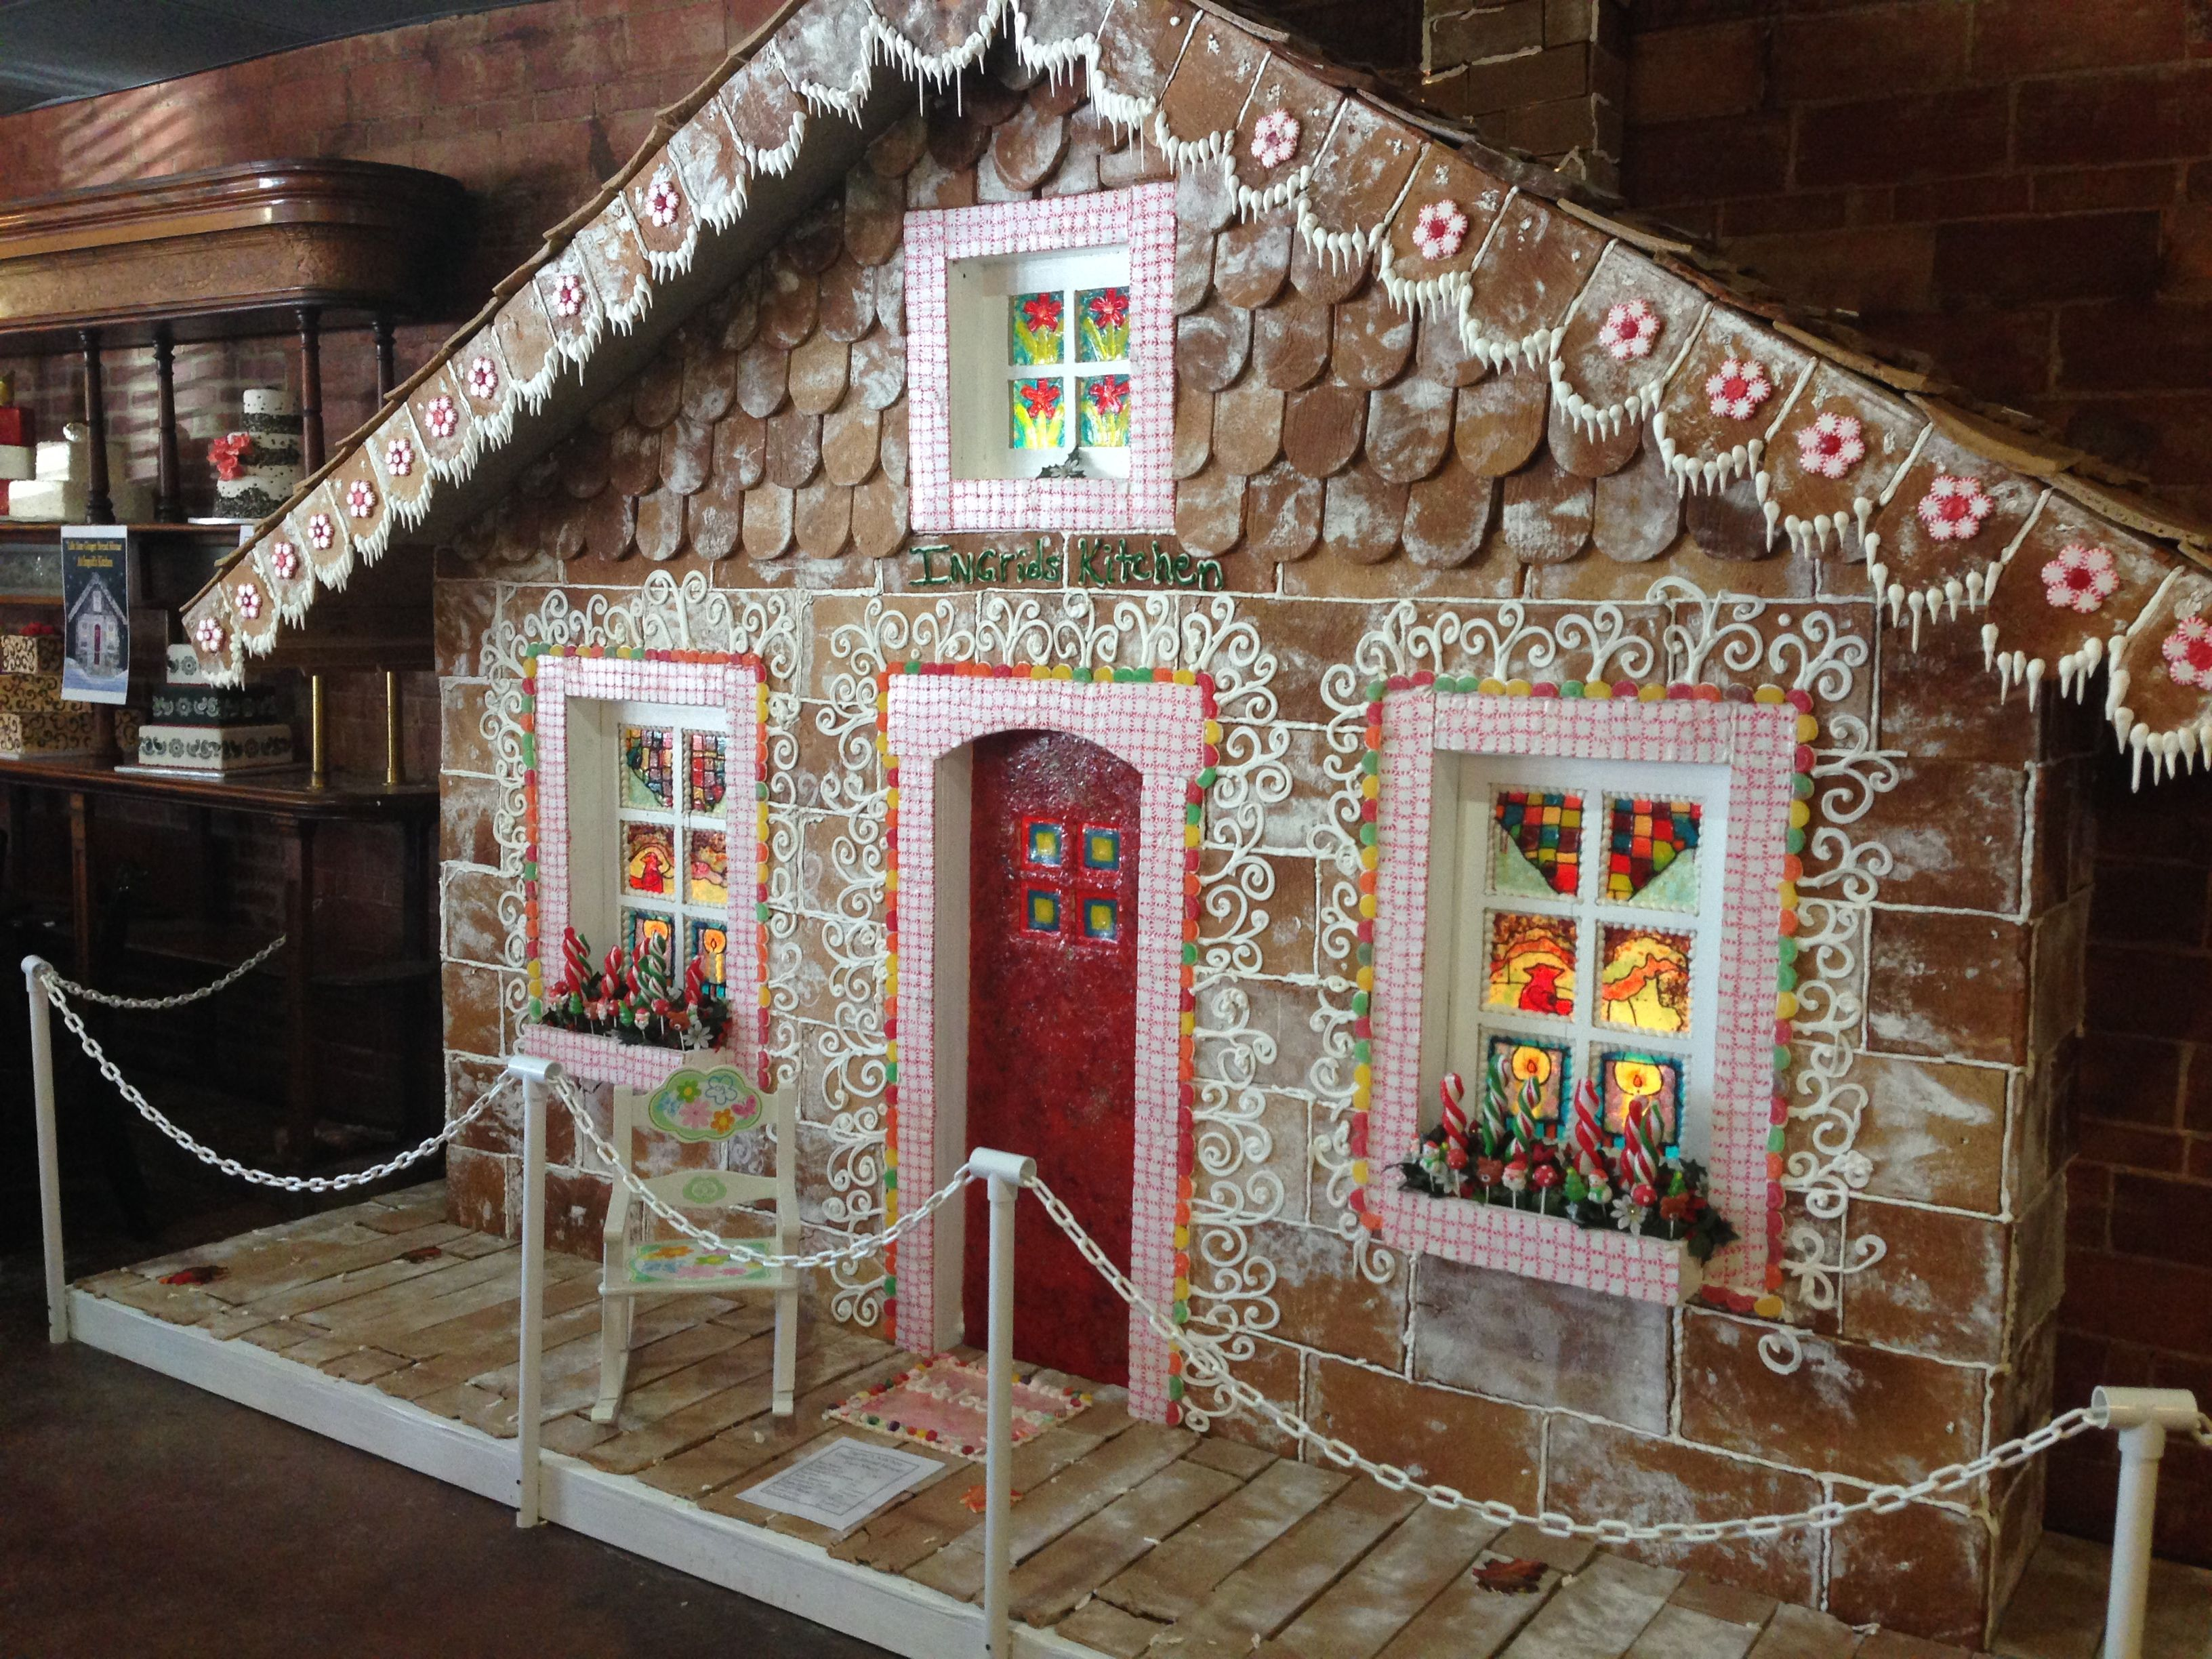 Life Size Gingerbread House Google Search Cardboard Gingerbread House Gingerbread House Props Christmas Gingerbread House